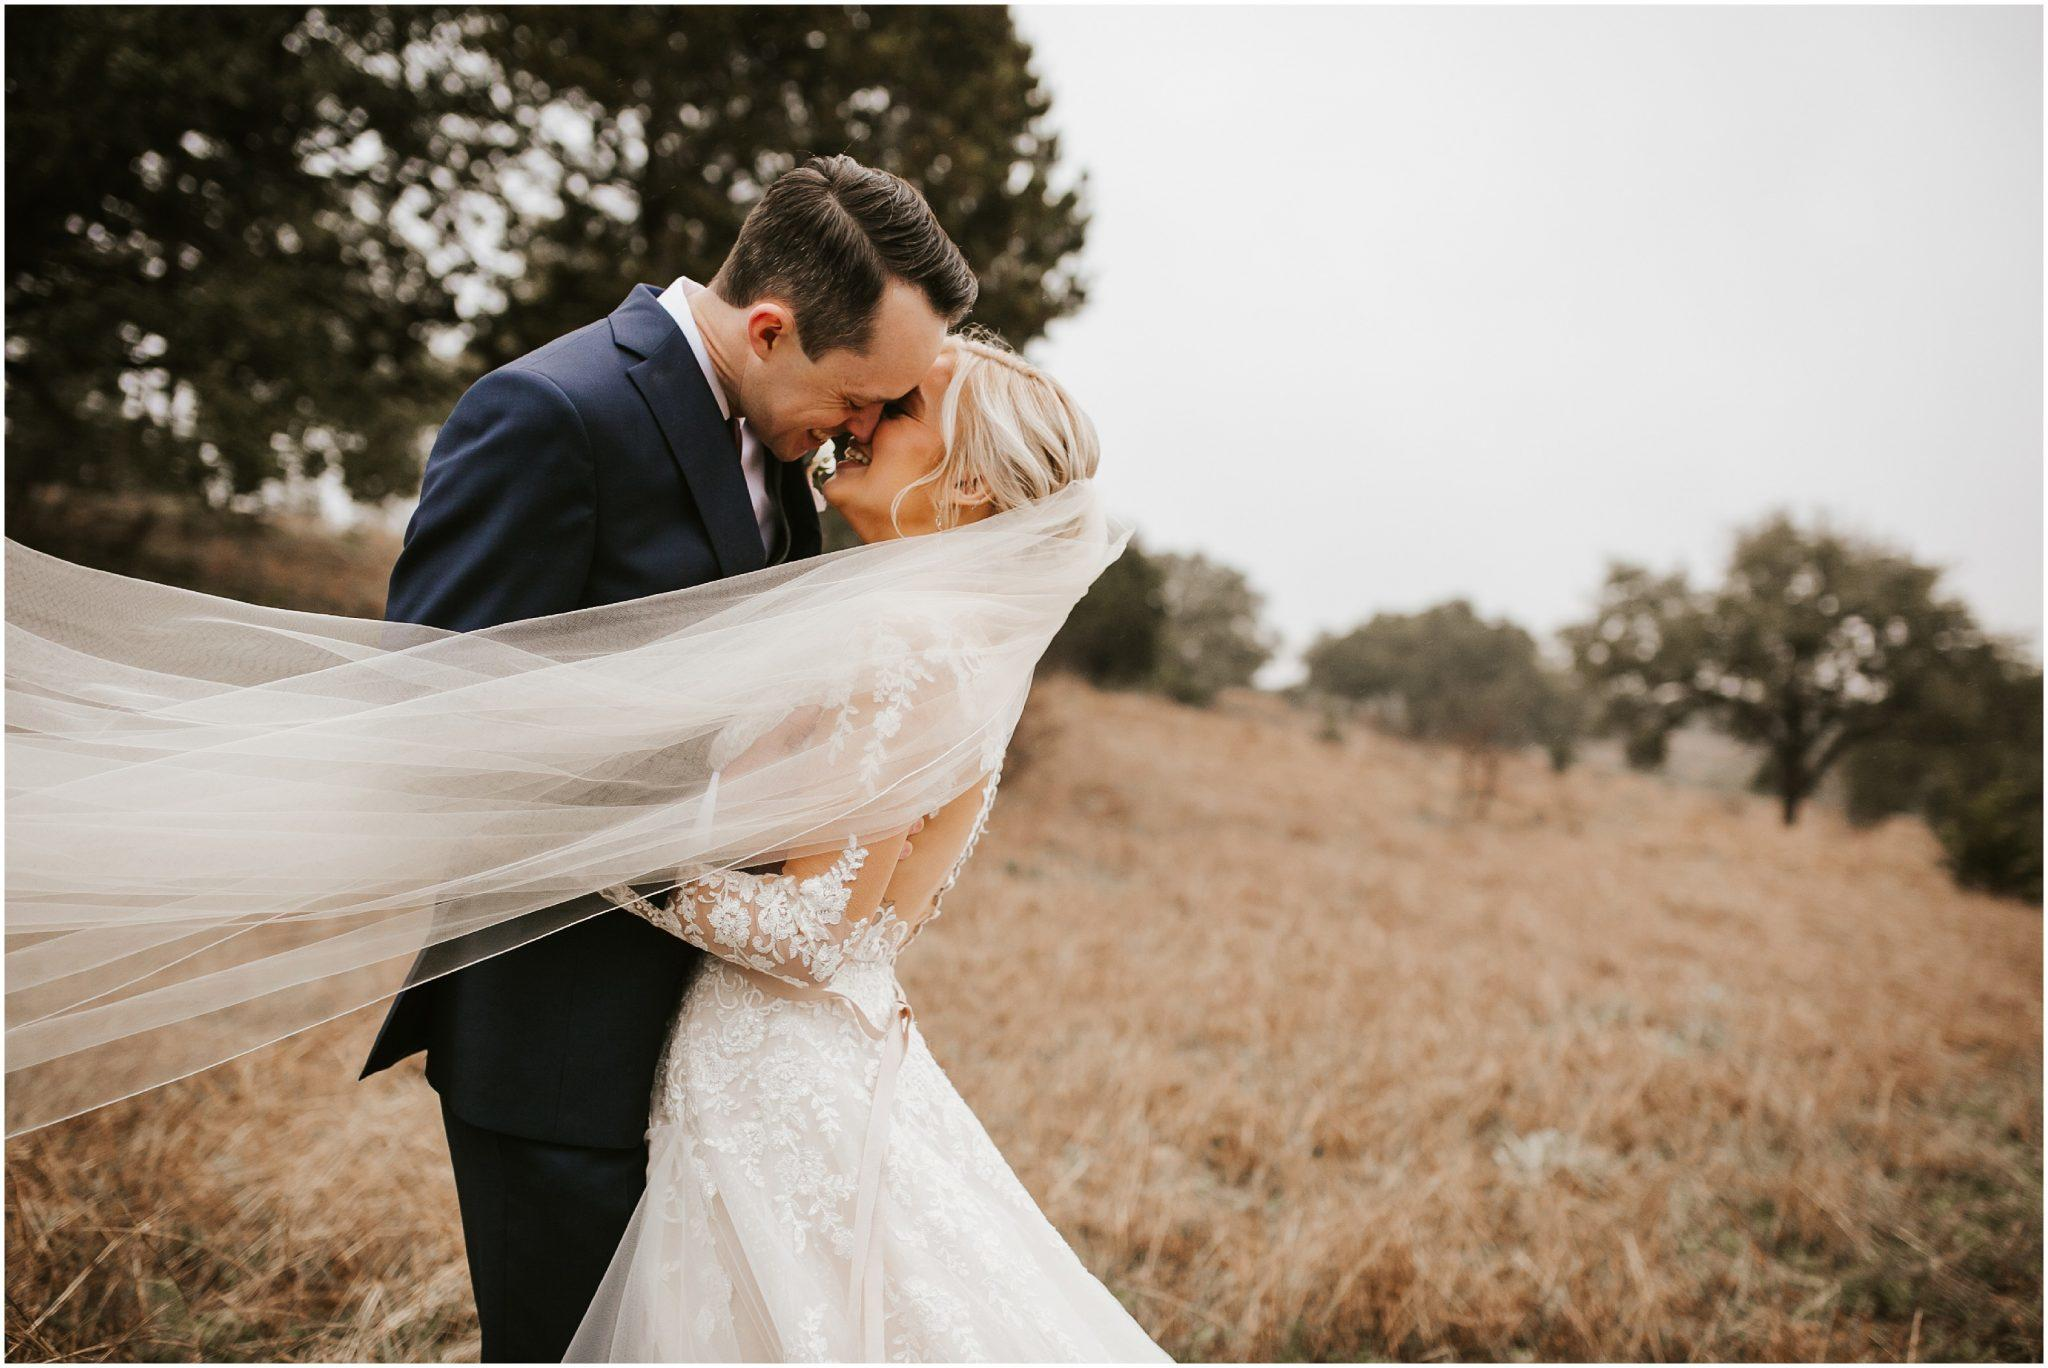 couple kissing and smiling in wedding attire in a brown grassy field